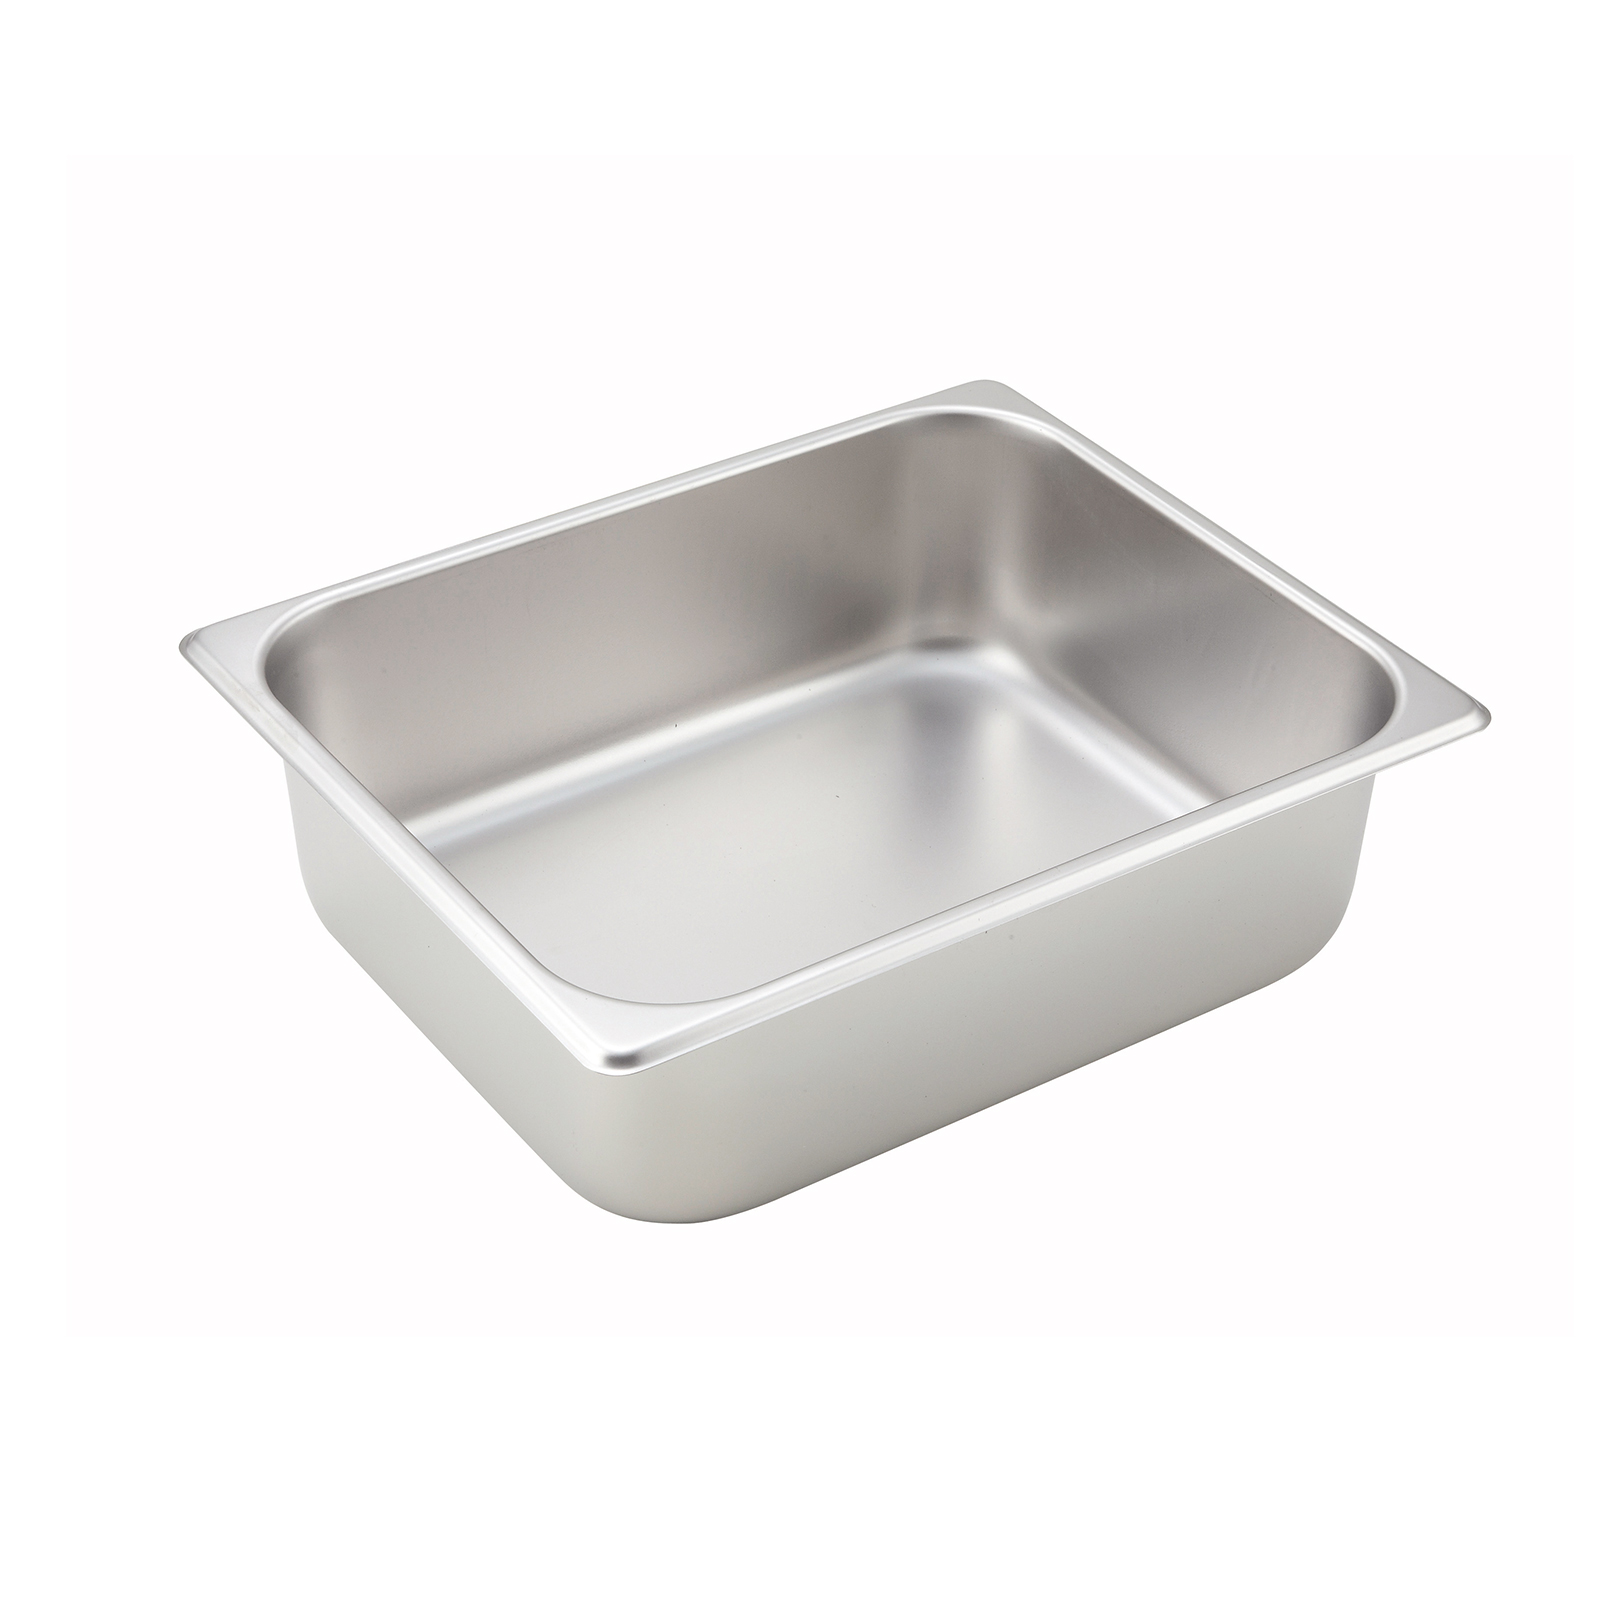 Winco SPH4 steam table pan, stainless steel